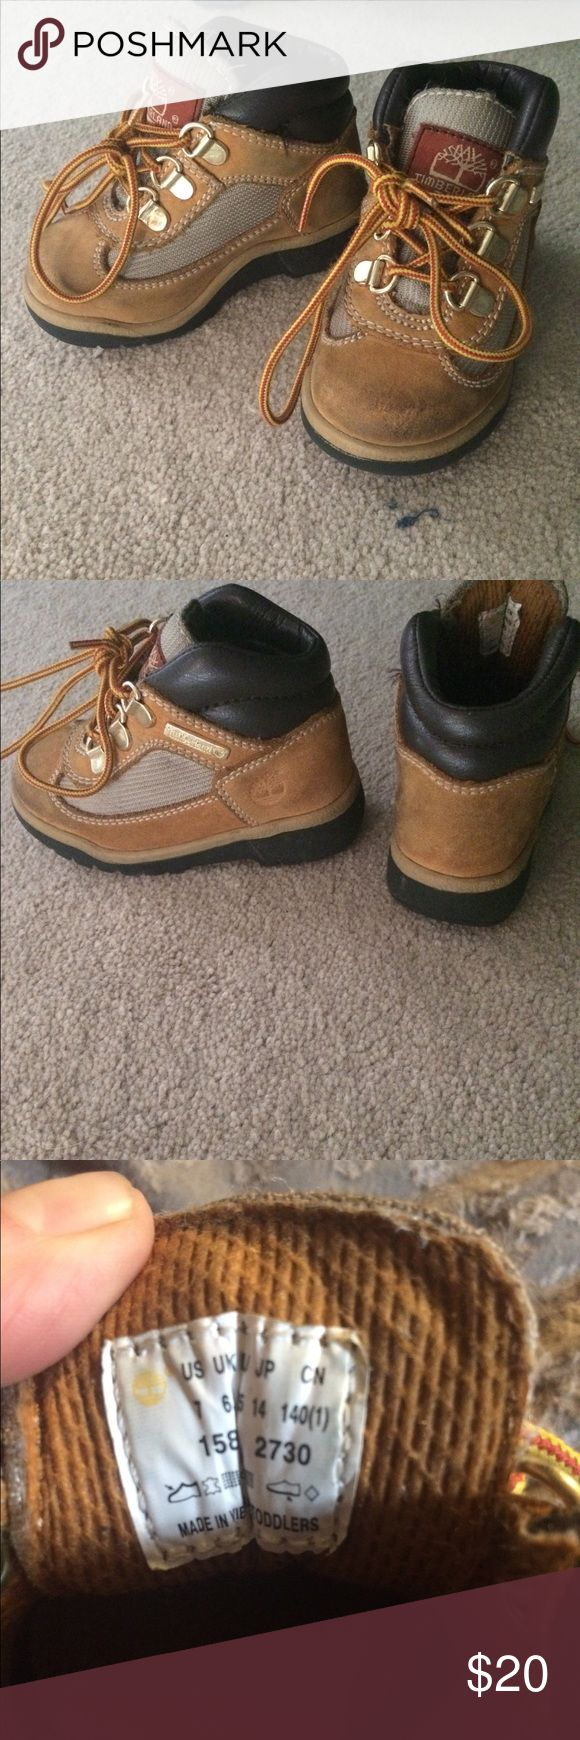 Toddler size 7 timberland boots Gently worn tan timberland boots, toddler size 7. They very clean with a little dirt on the front toe area but it can certainly come off with some scrubbing. Other wise no rips or stains and tread is like new on bottom! Timberland Shoes Boots